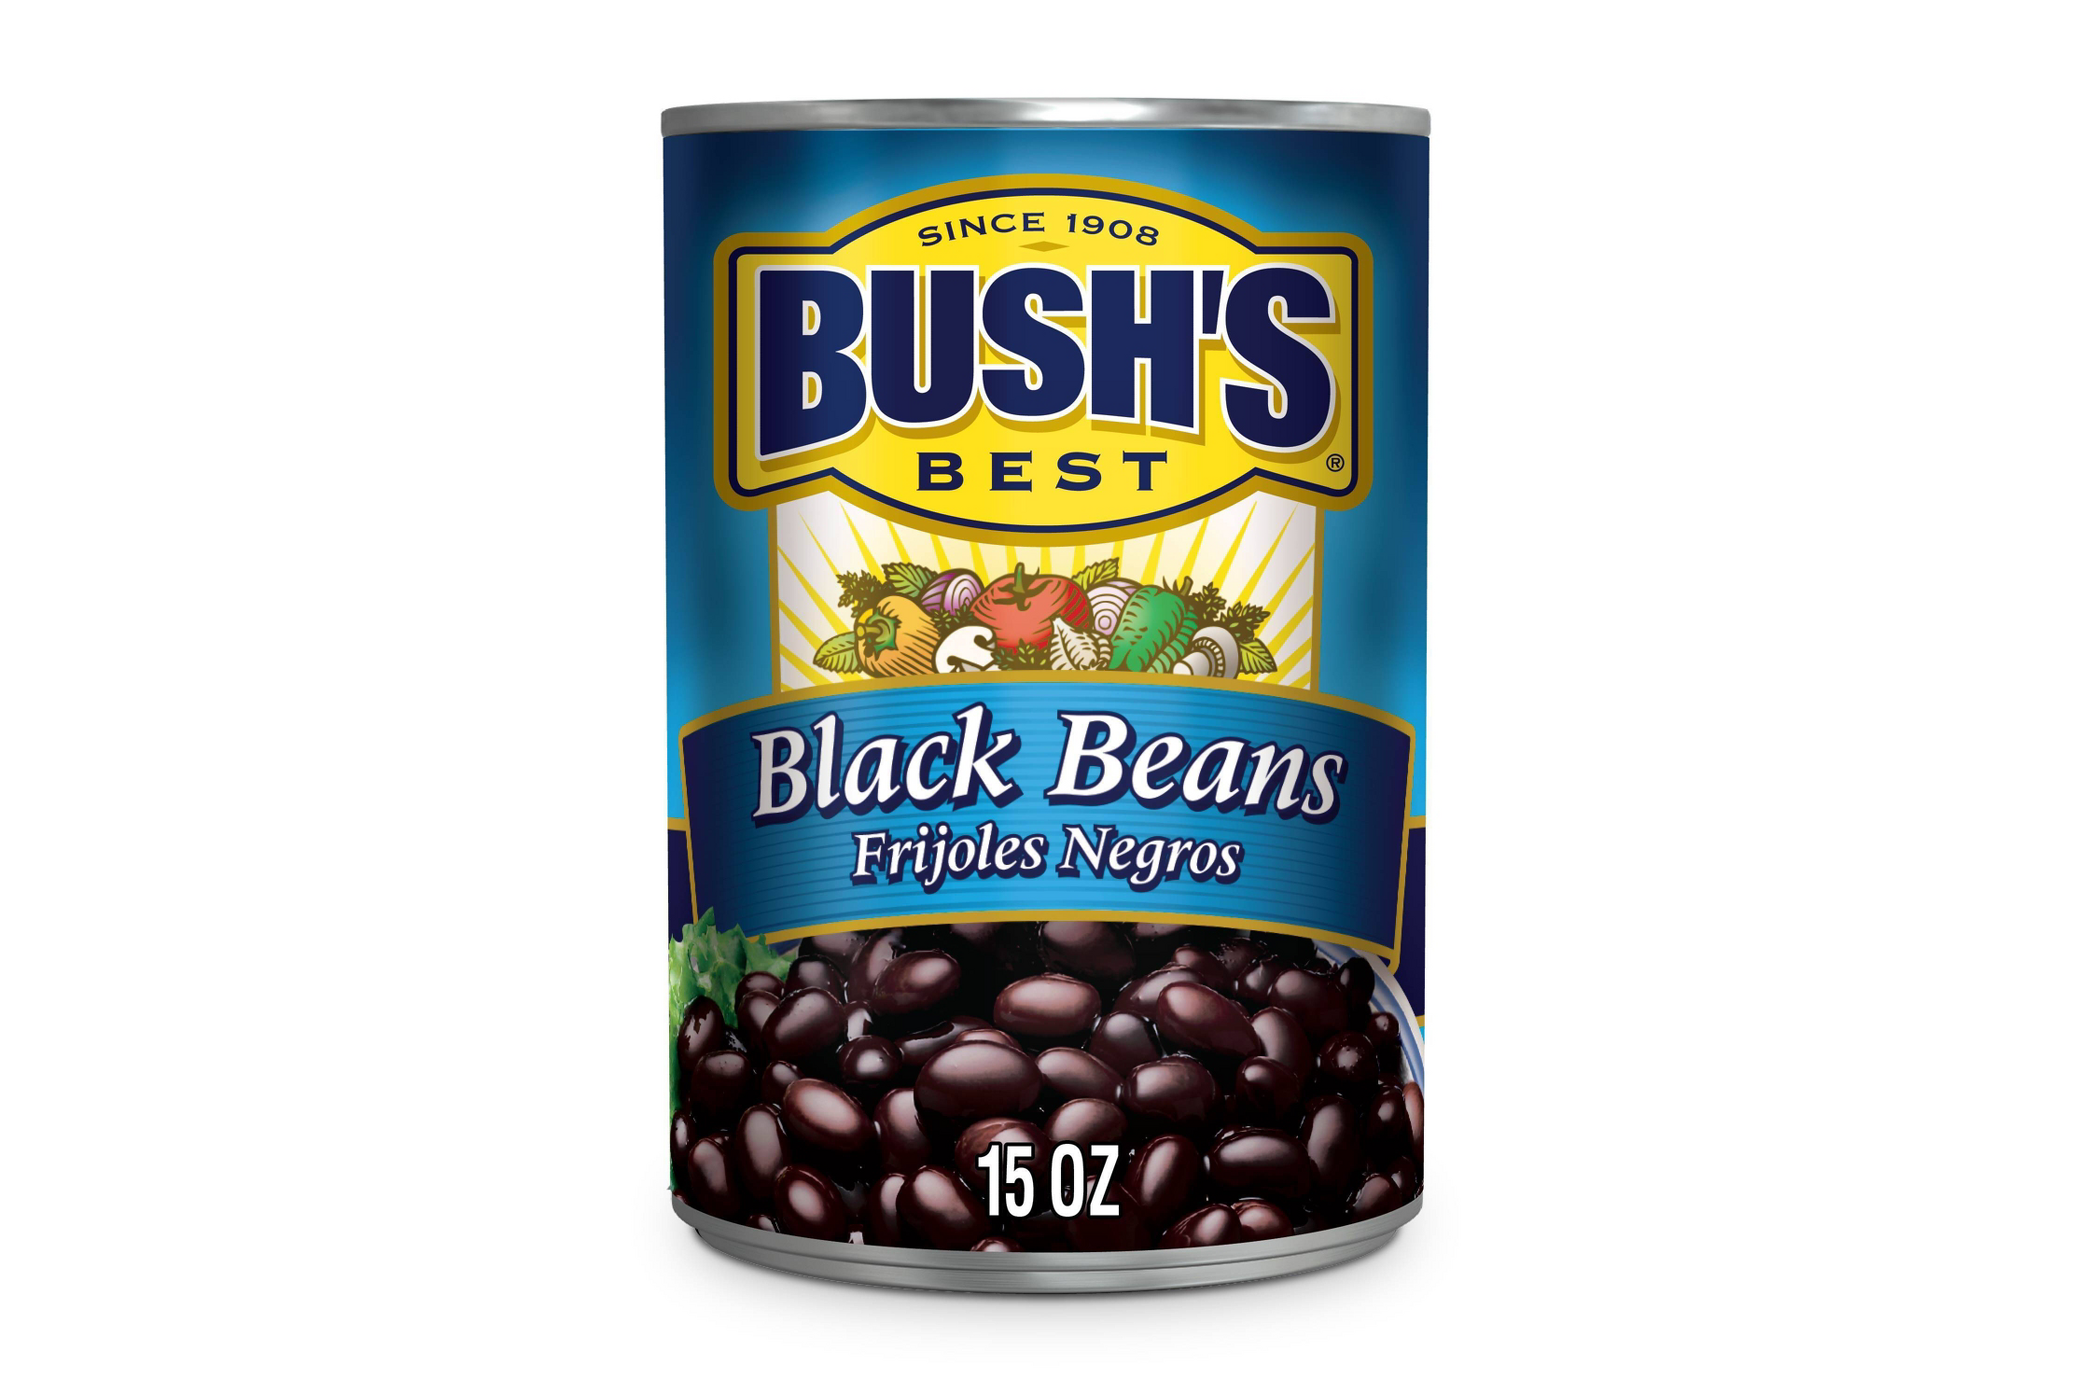 a can of Bush's Black Beans